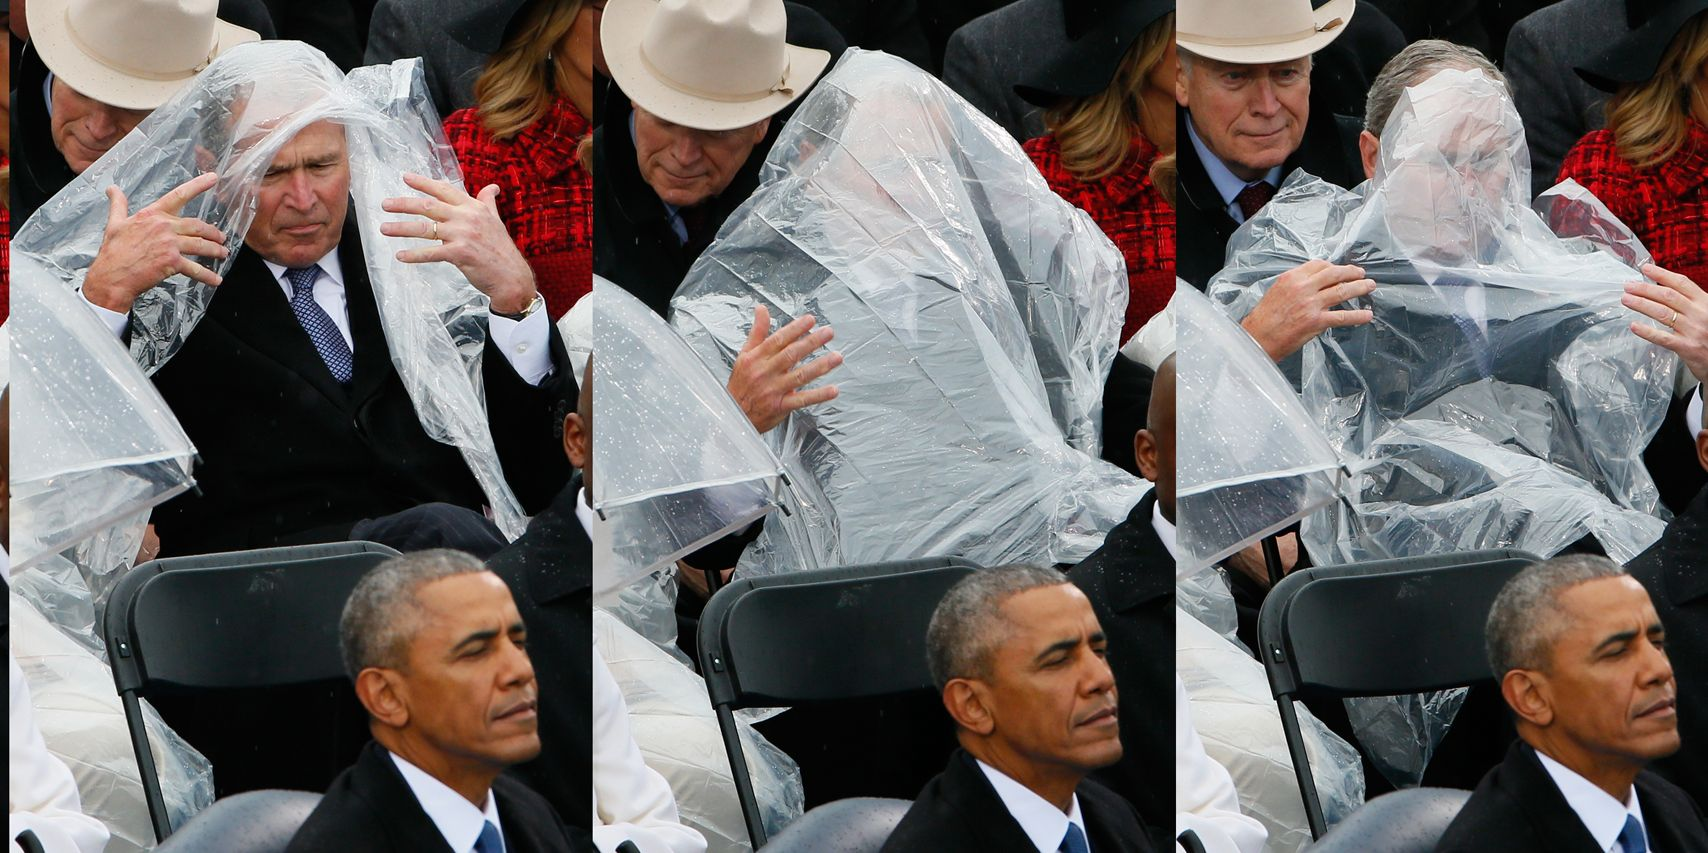 These Photos Of George Bush Struggling With A Rain Poncho Are Perhaps The Best Things To Come Out Of Inauguration Day